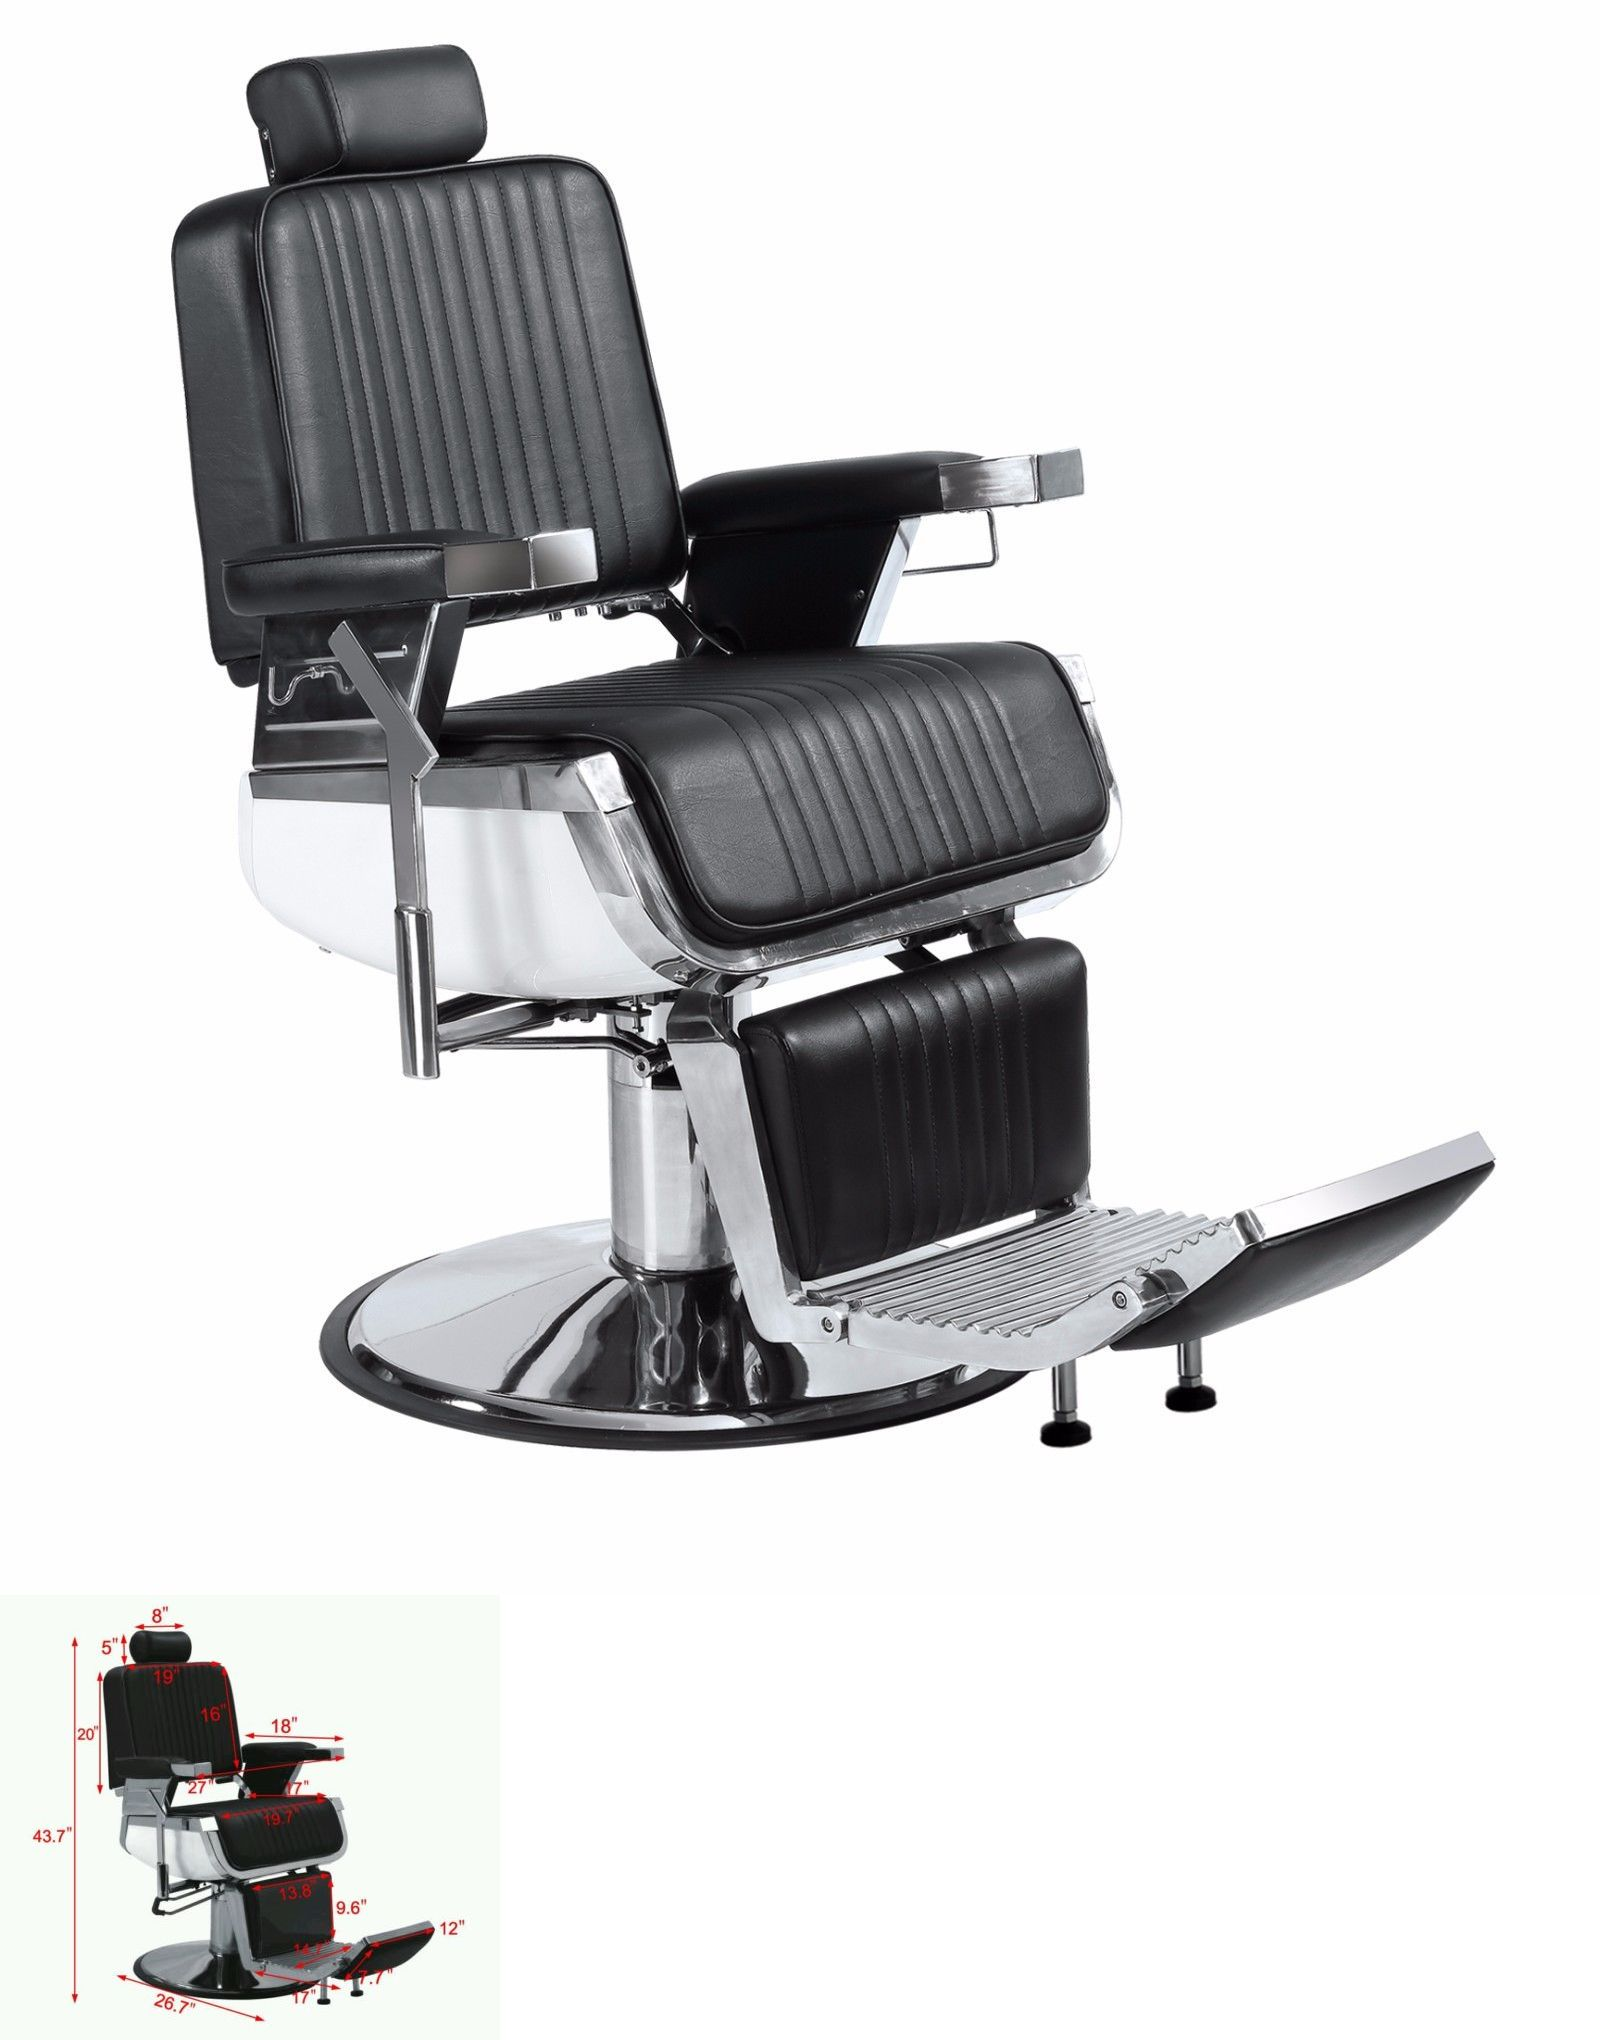 equipment chairs beauty hair cuisine adorablement car race children hydraulic chair eastmagic ebay portable salon styling child barber